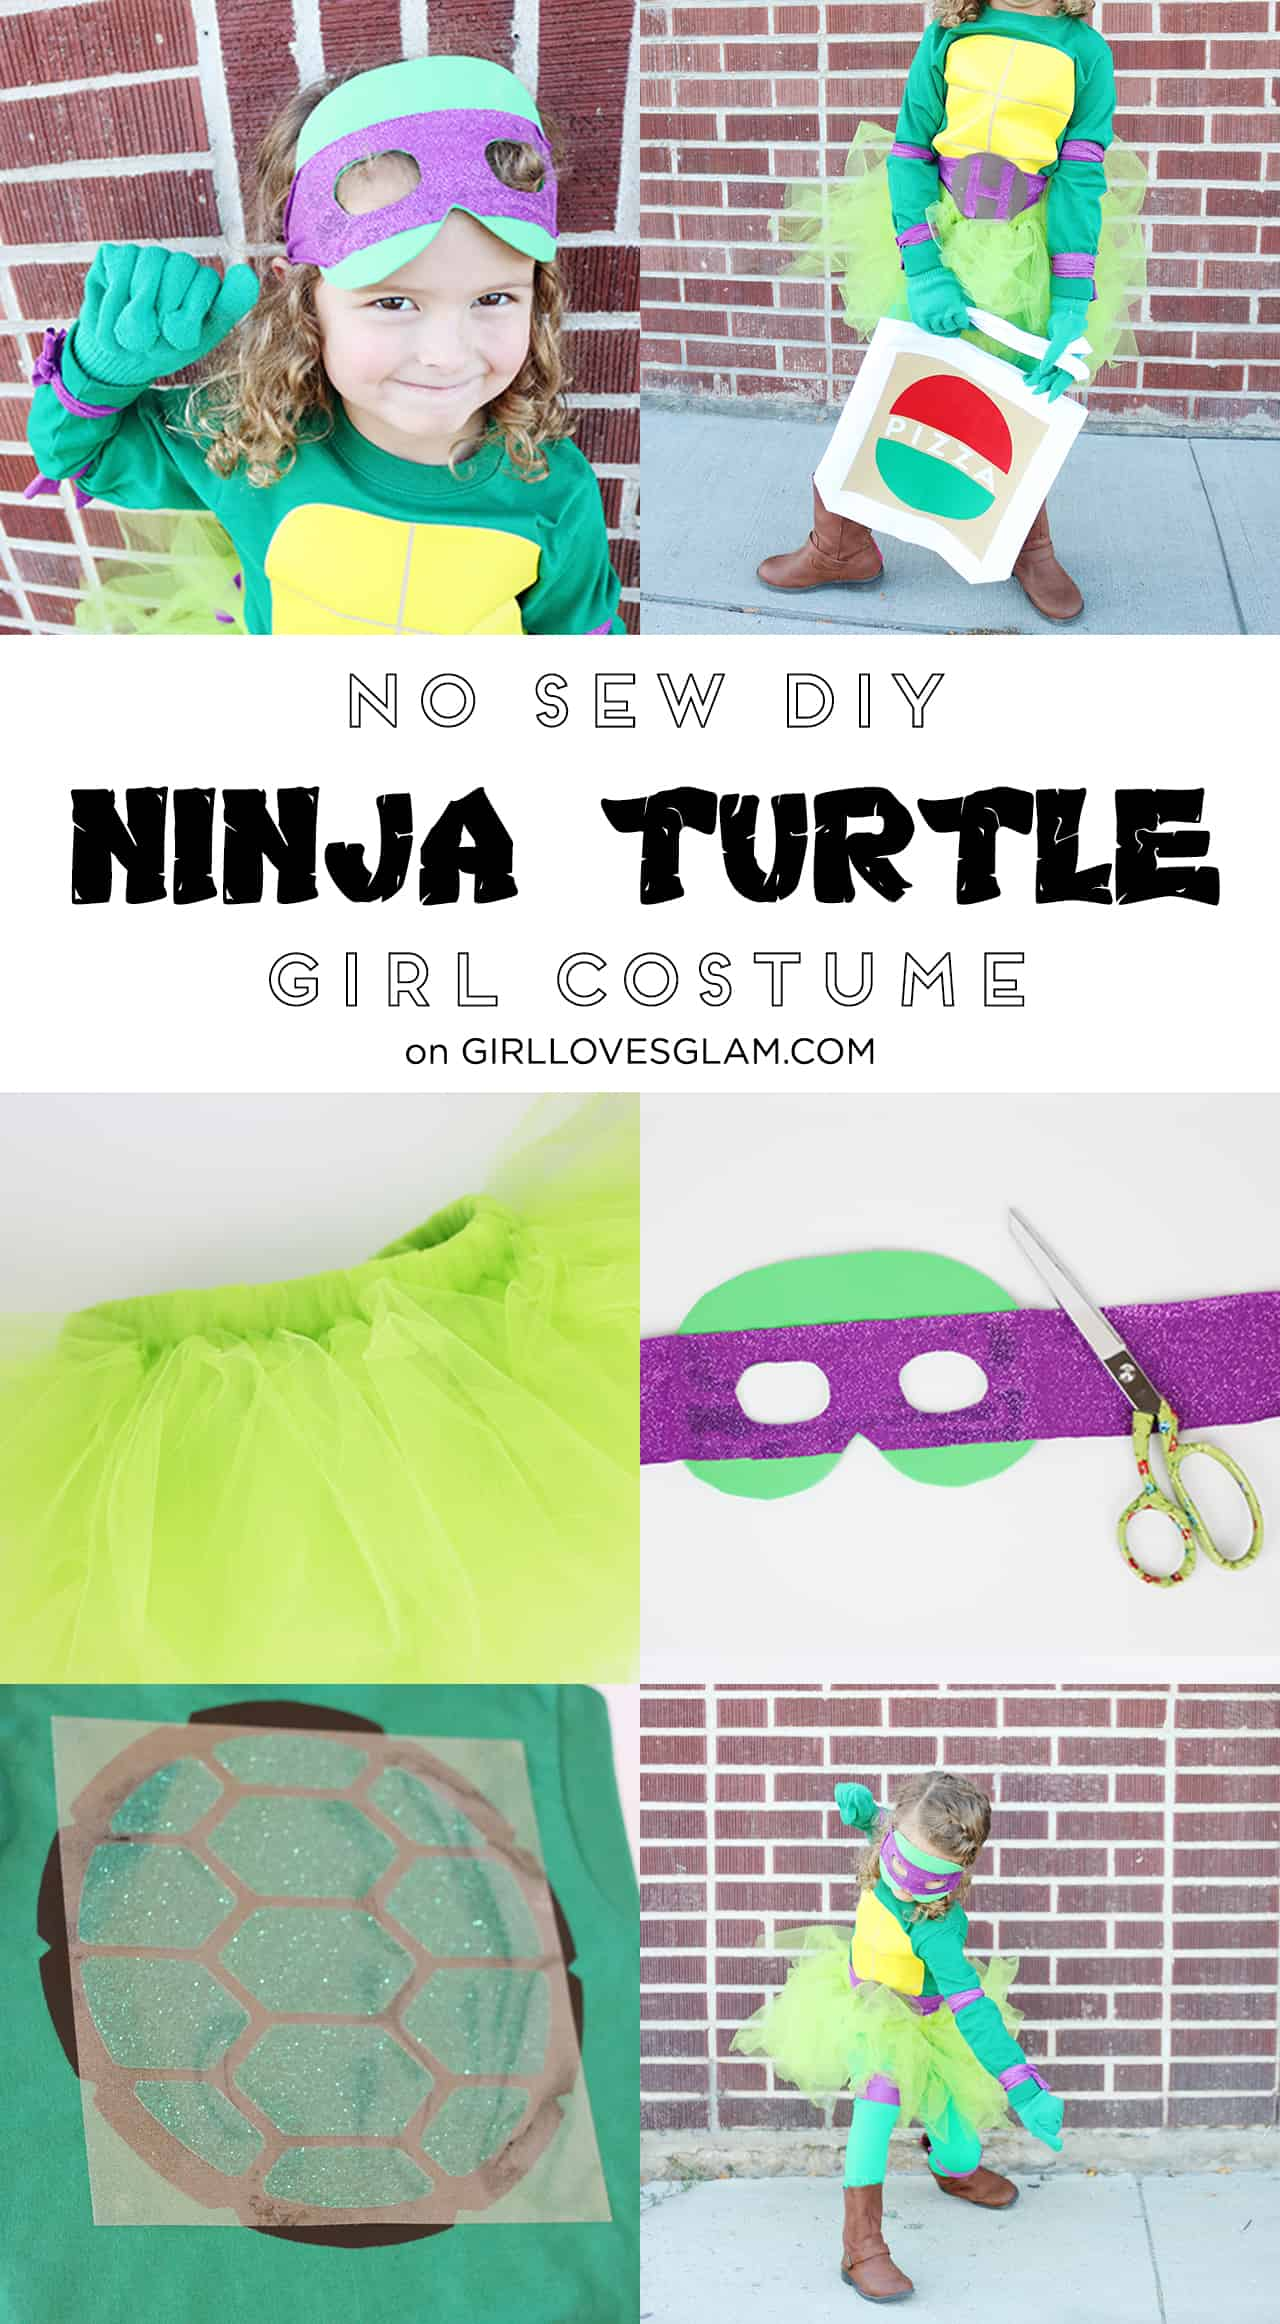 no-sew-diy-ninja-turtle-girl-costume